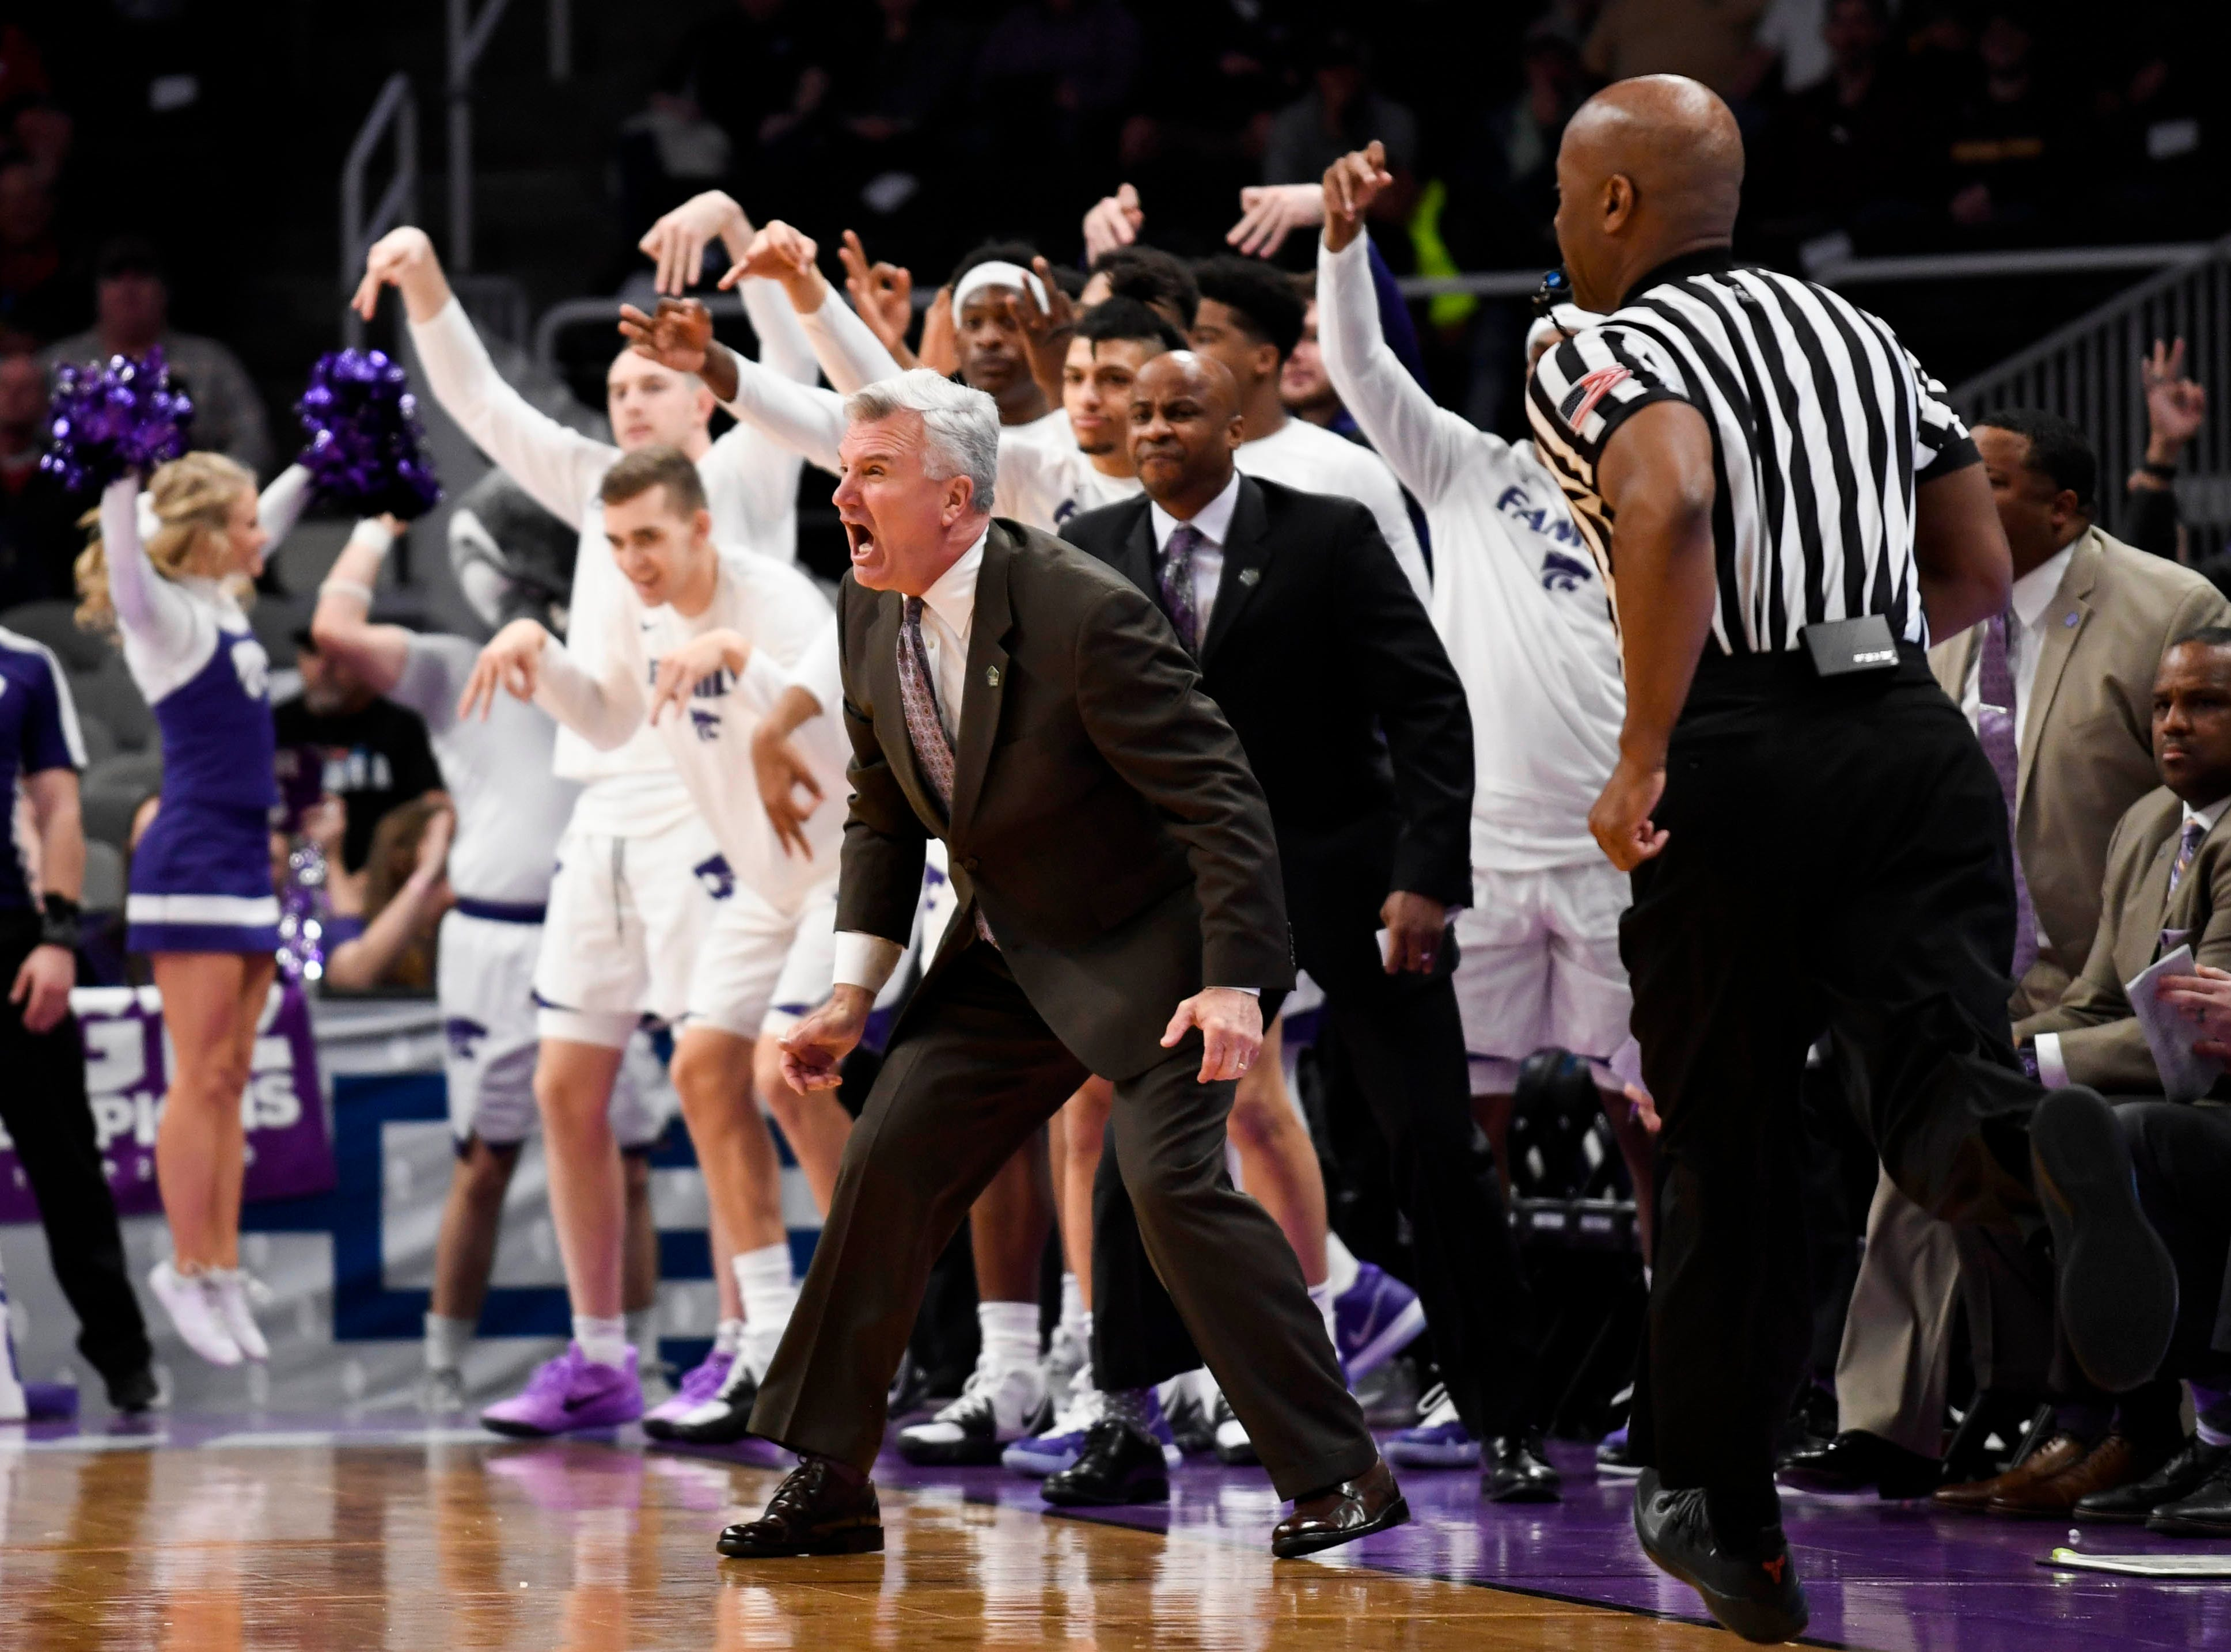 Mar 22, 2019; San Jose, CA, USA; Kansas State Wildcats head coach Bruce Weber reacts with his team during the first half in the first round of the 2019 NCAA Tournament against the UC Irvine Anteaters at SAP Center. Mandatory Credit: Kelley L Cox-USA TODAY Sports